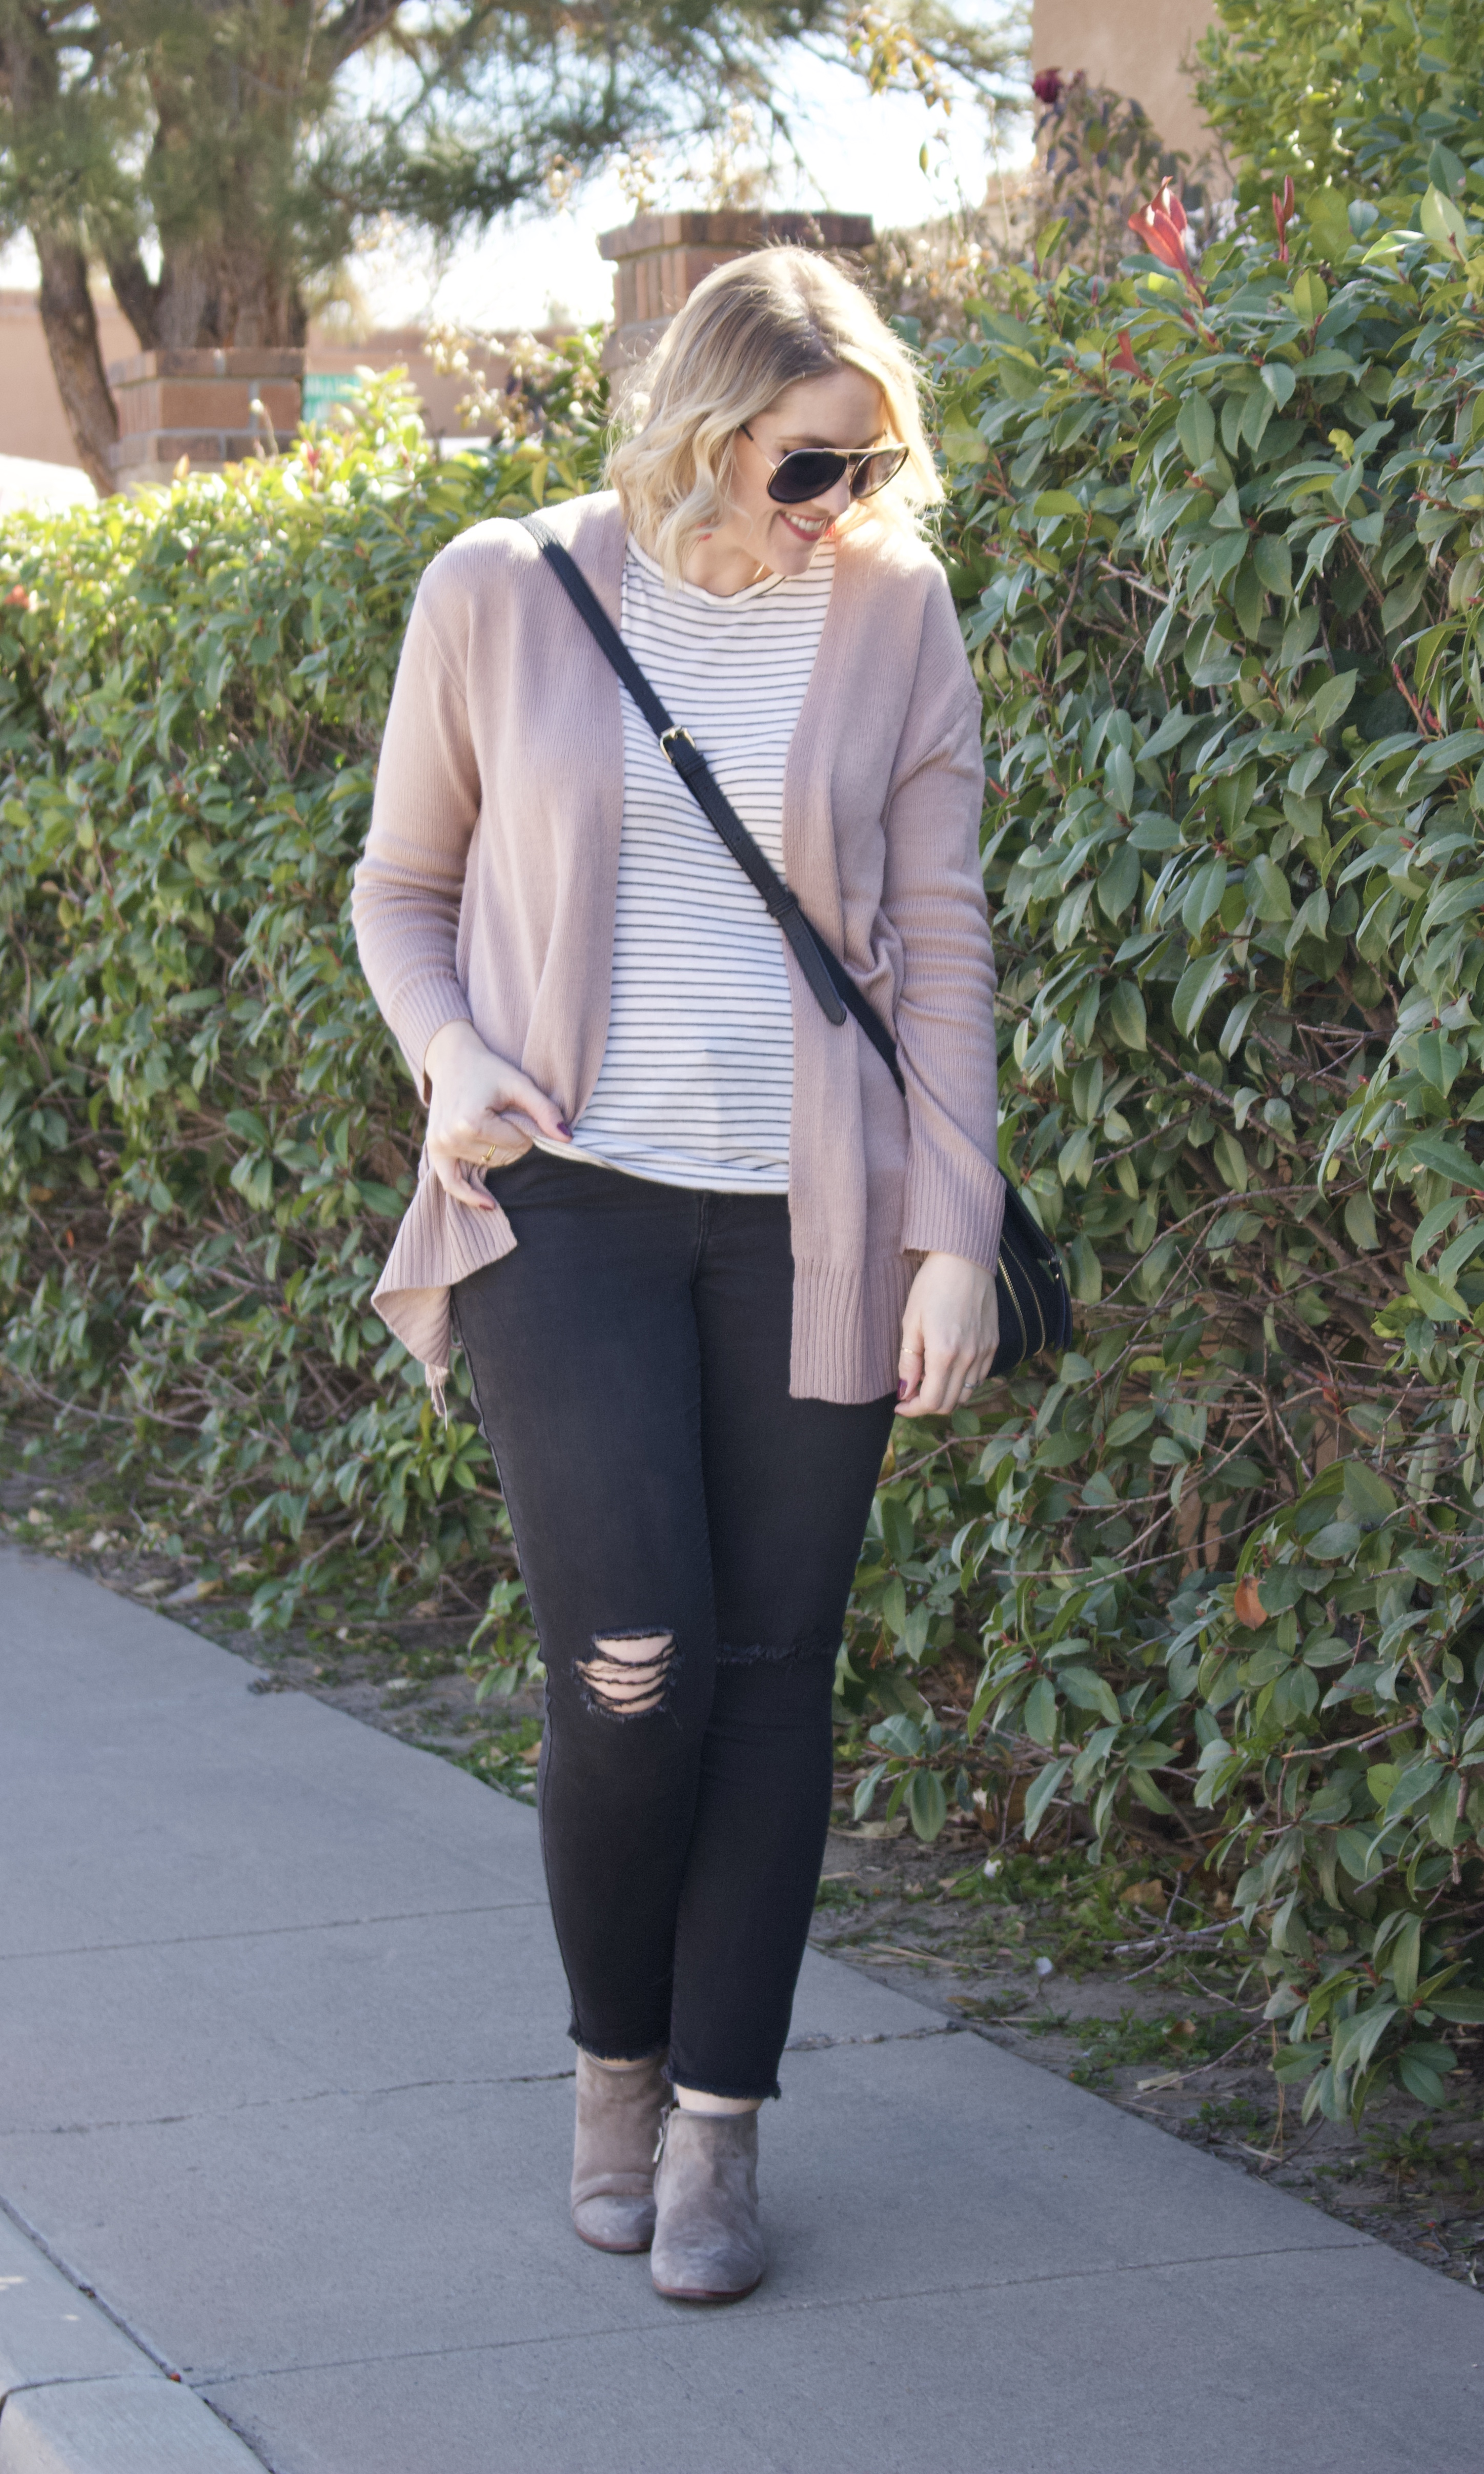 casual winter layers outfit #winterstyle #casualoutfitideas